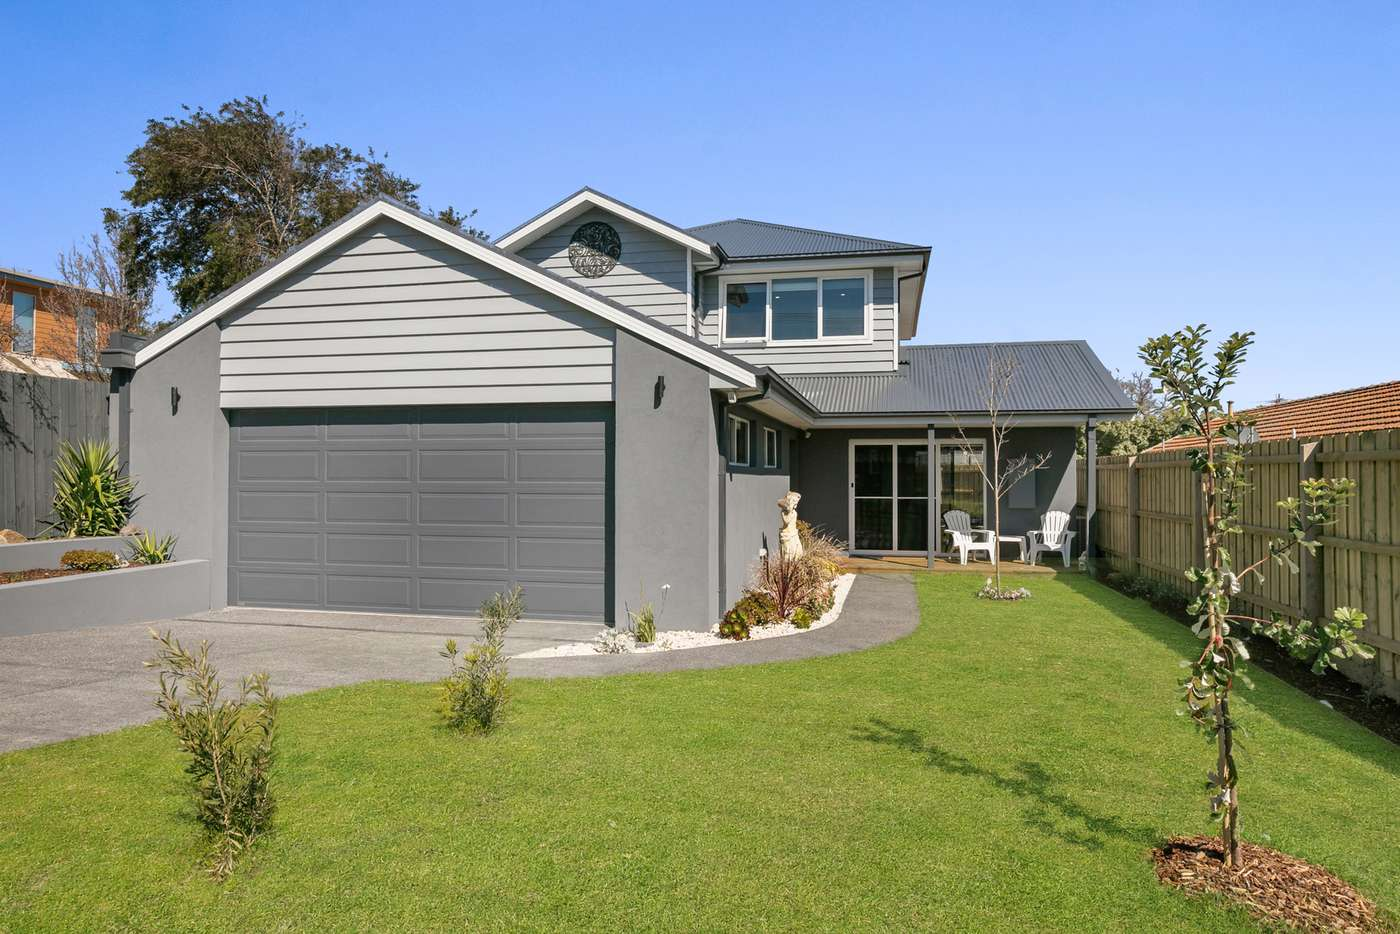 Main view of Homely house listing, 12 Ti Tree Grove, Mornington VIC 3931